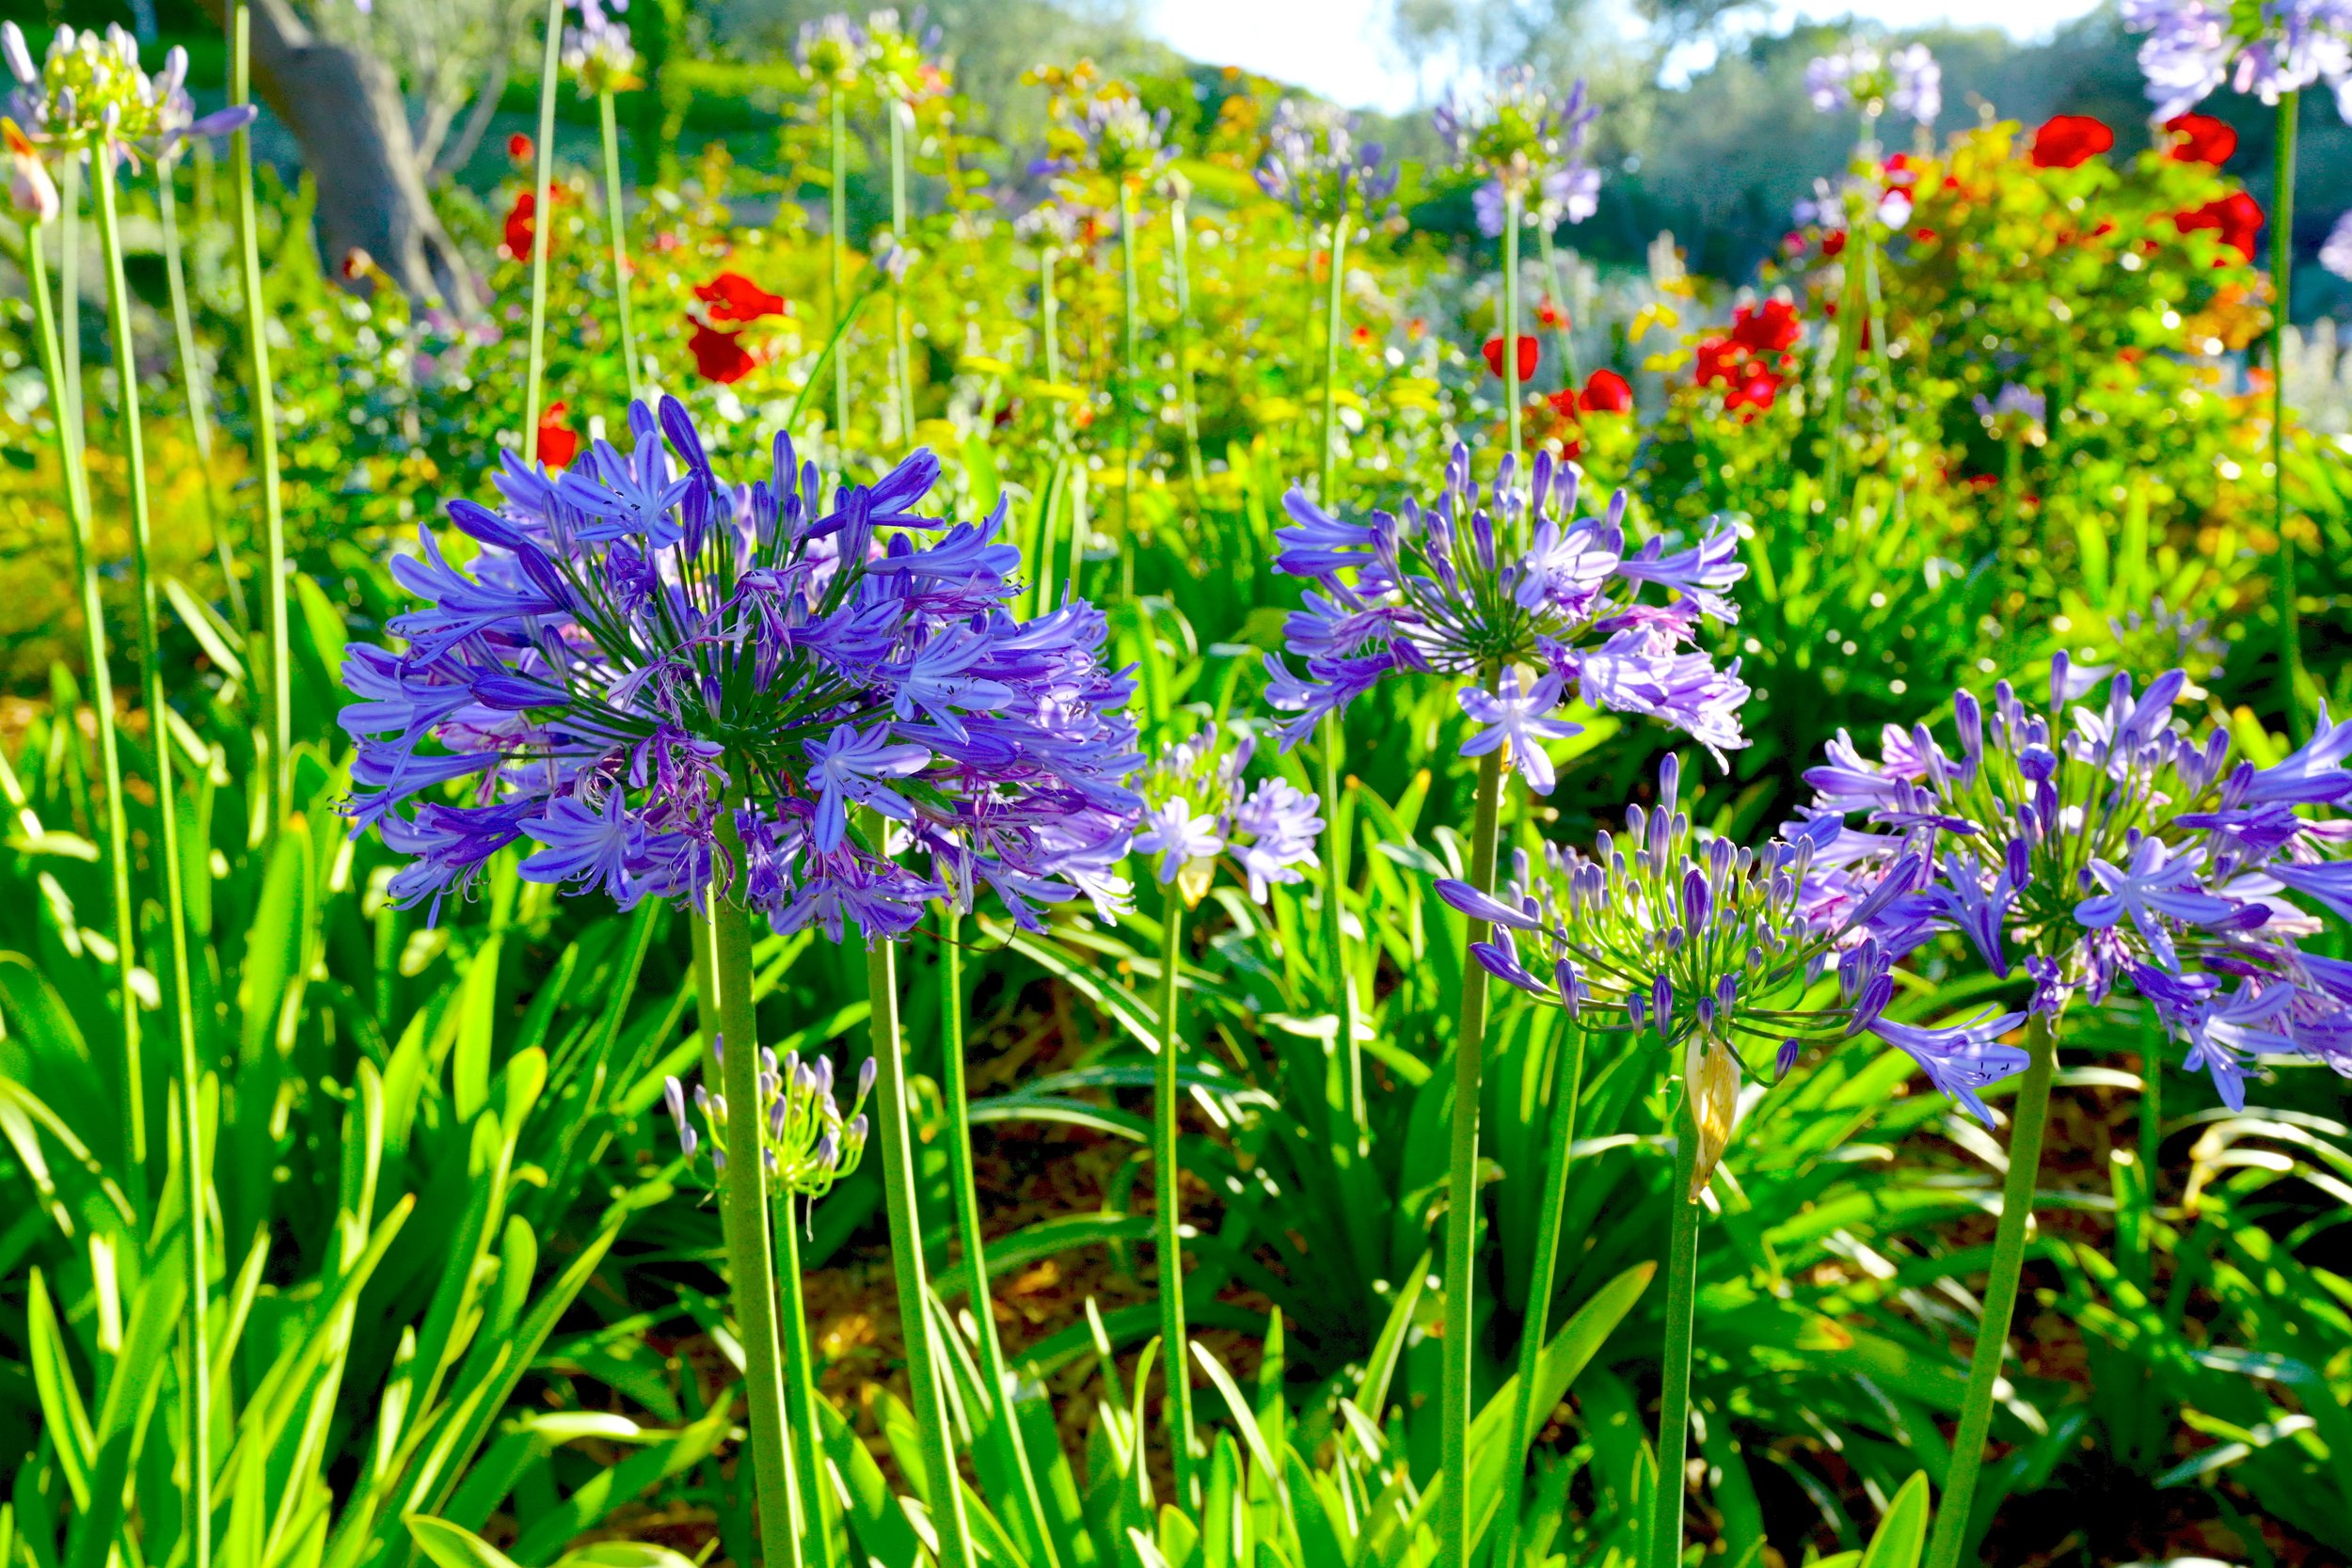 Agapanthus_and_Simplicity_Roses-Blazevich_Garden_1.jpg